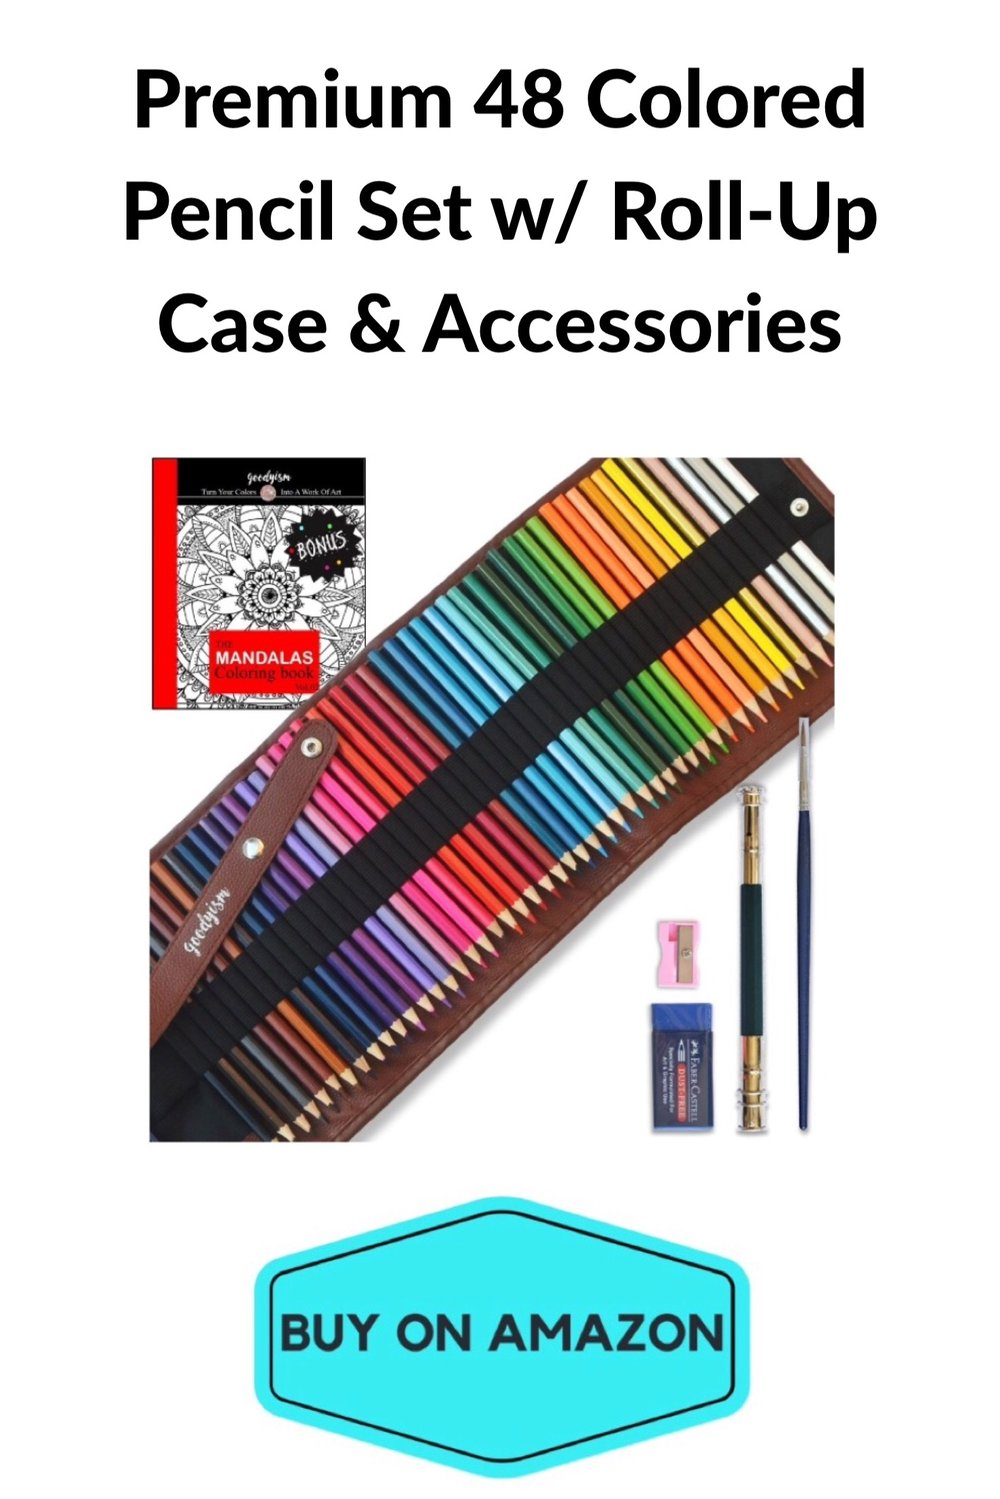 Premium 48 Colored Pencil Set w/ Roll-Up Case